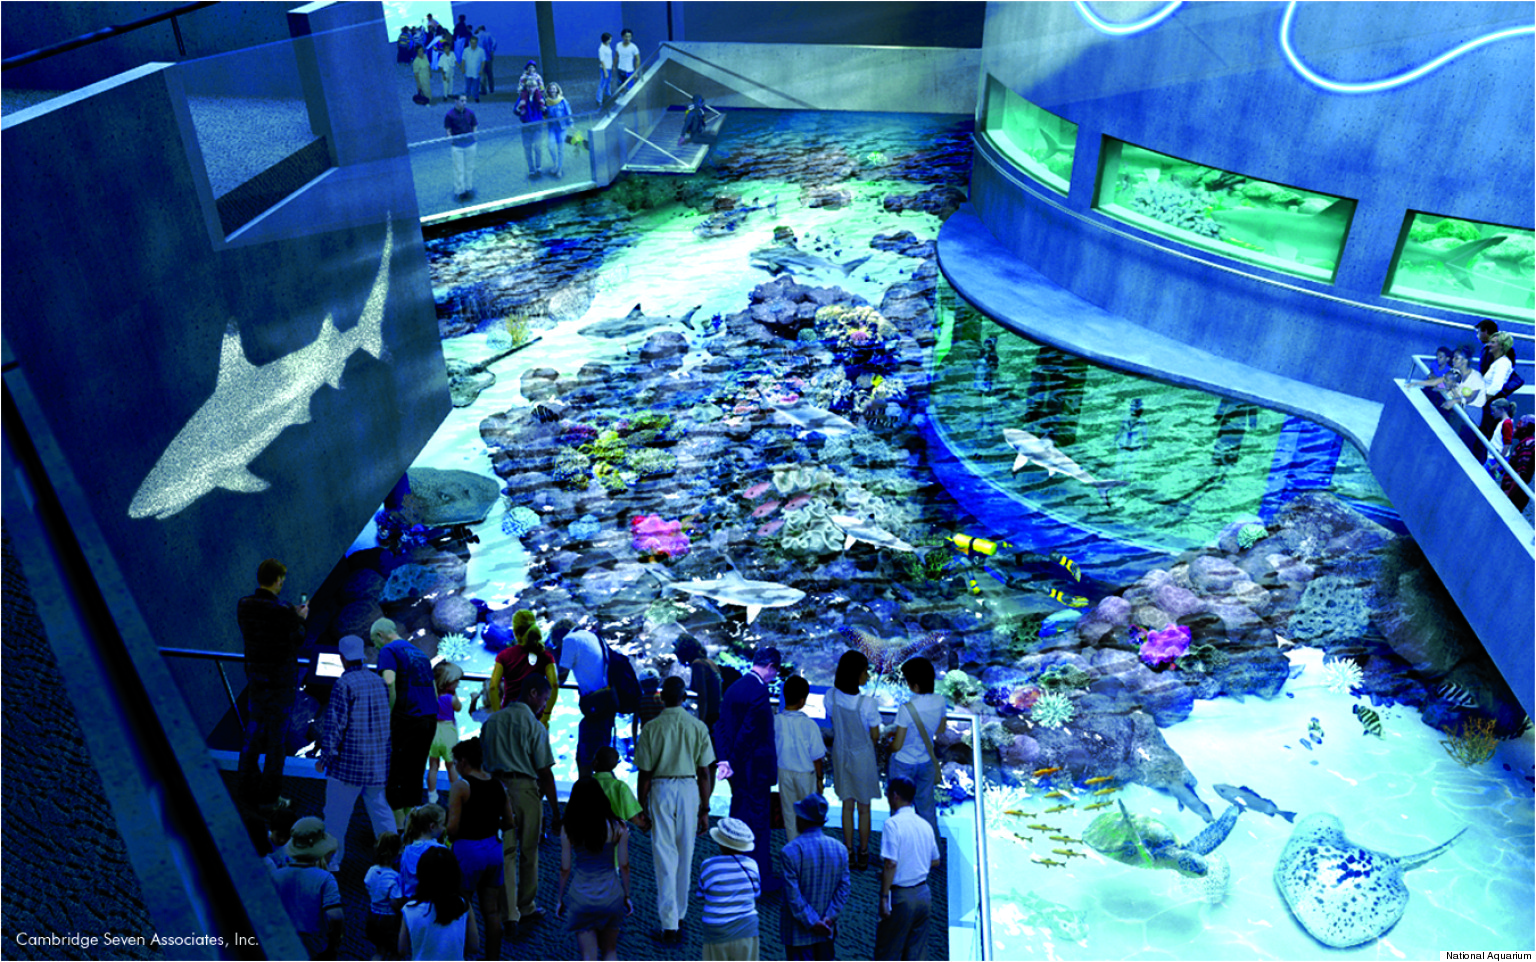 National Aquarium Blacktip Reef Exhibit Opens This Summer With Sharks Coral And A 500 Pound